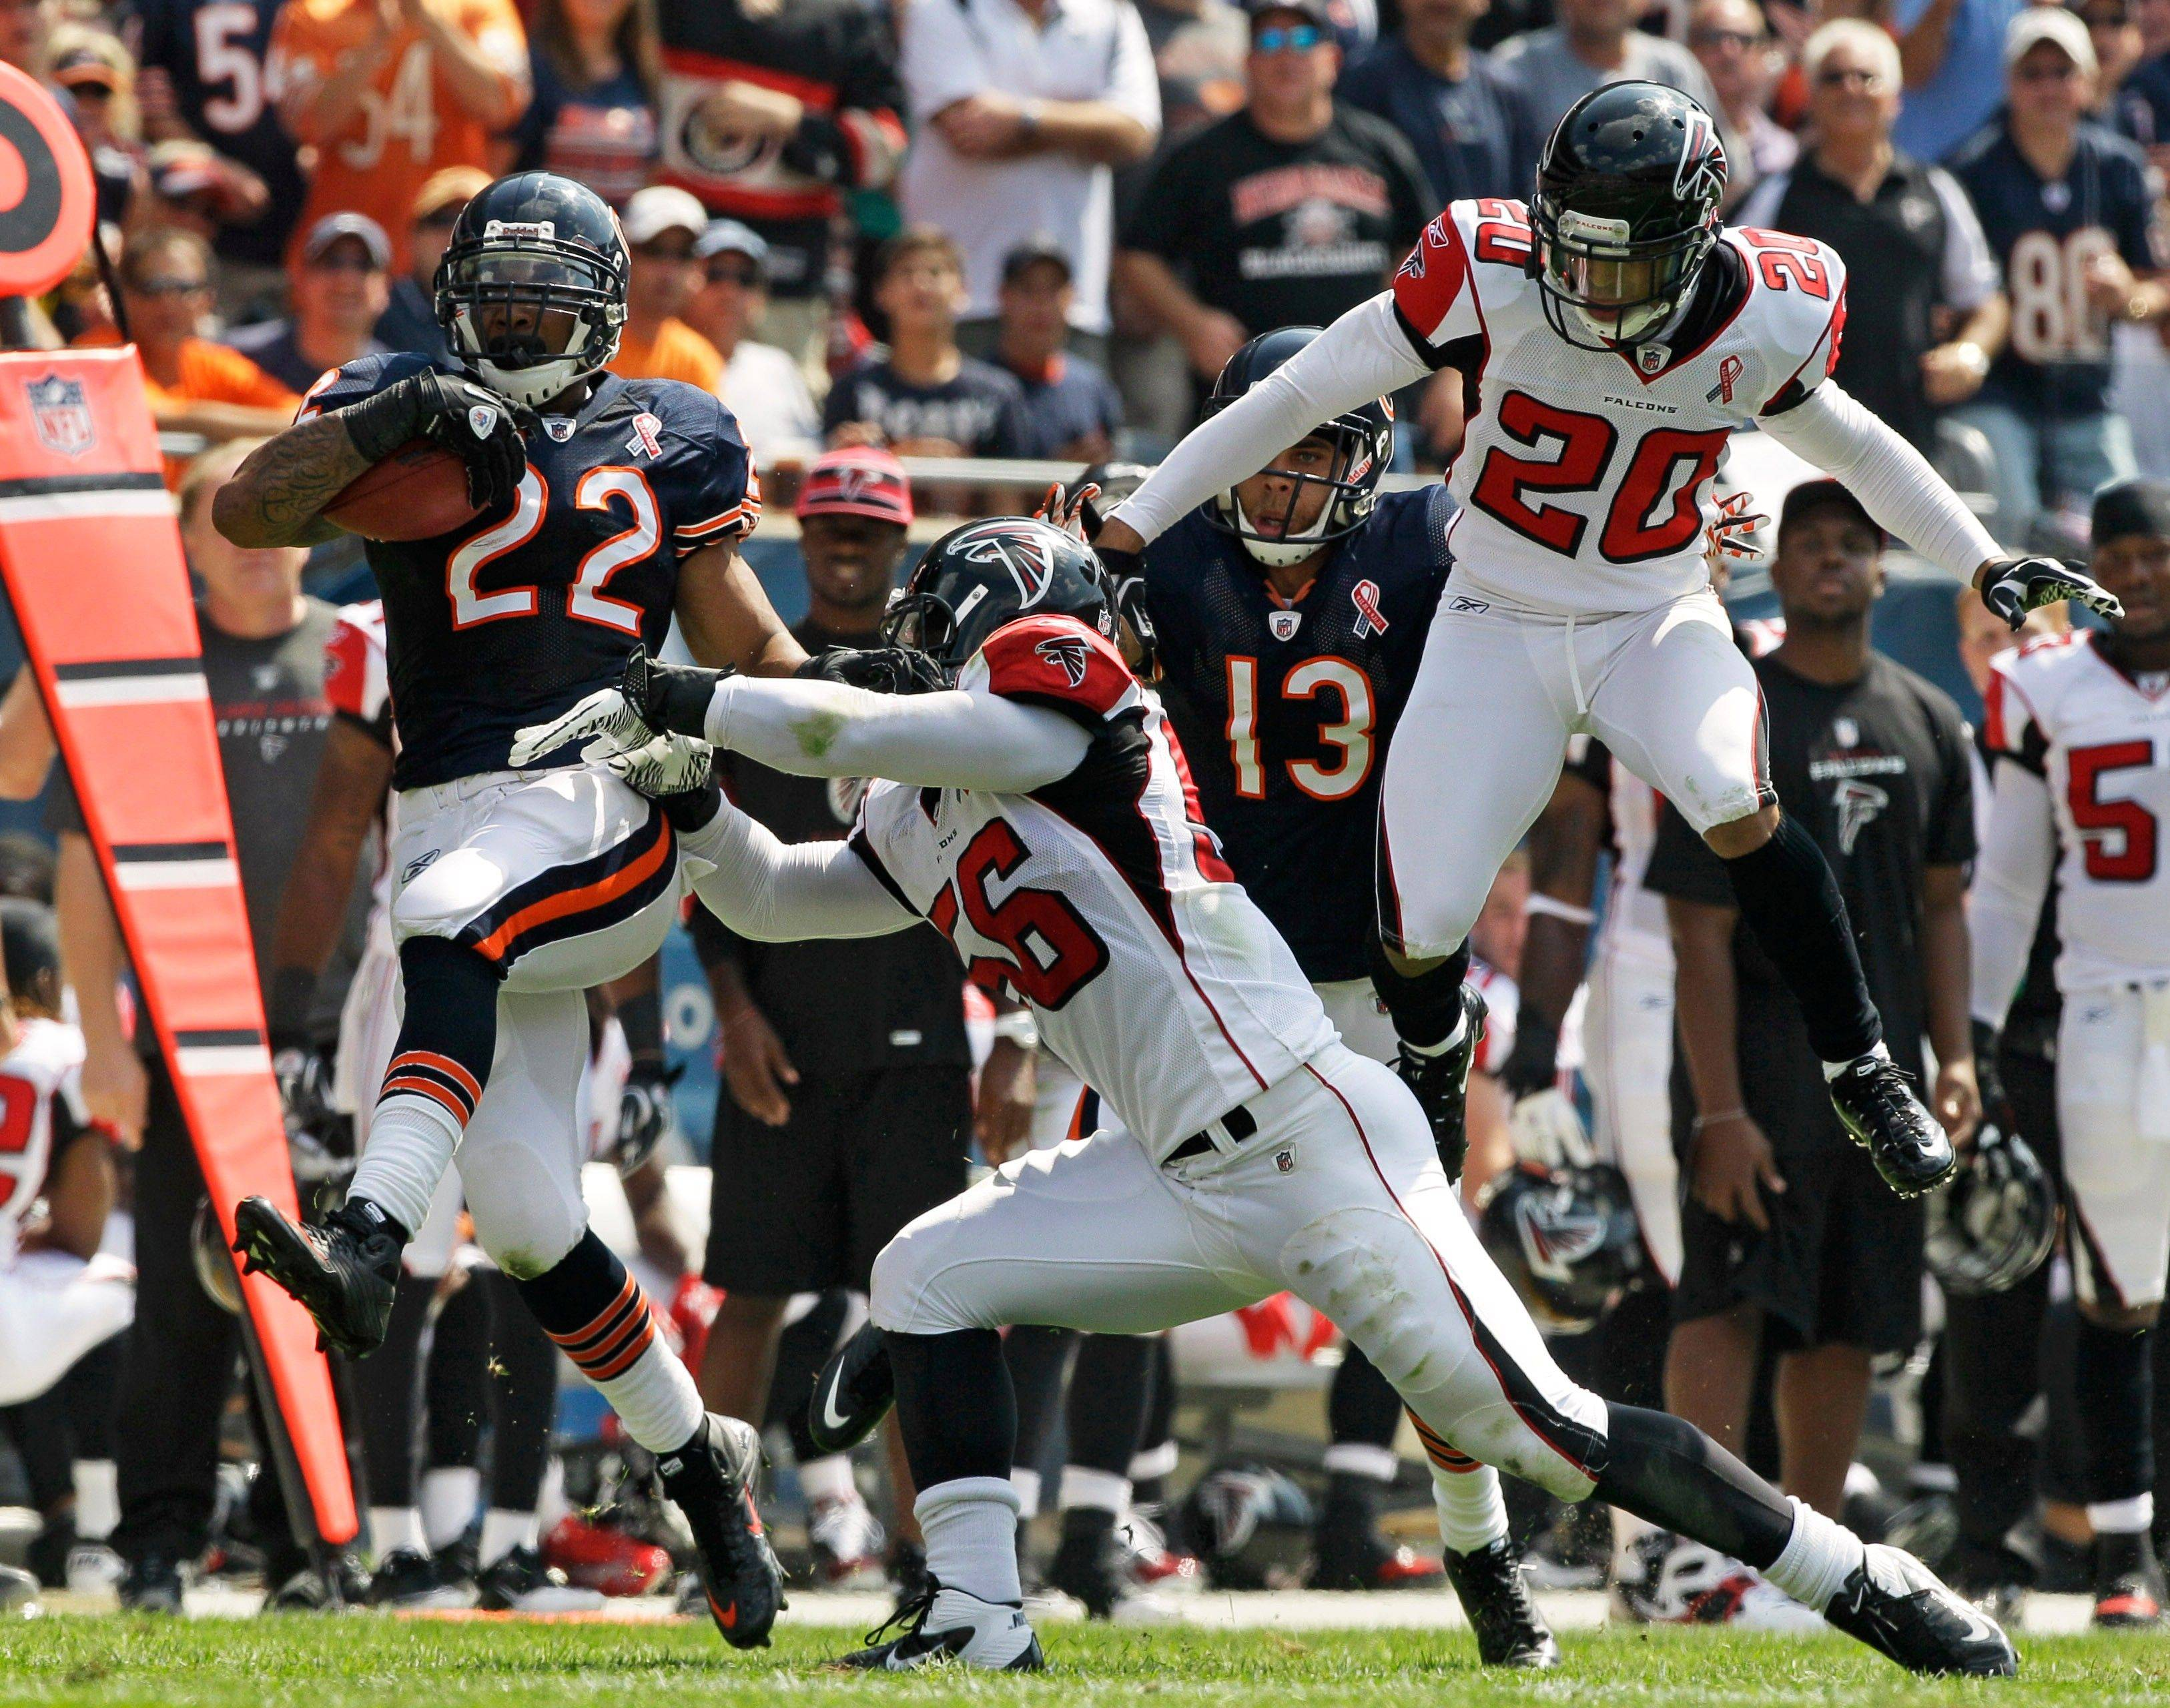 The Bears' Matt Forte shakes off the Falcons' Sean Weatherspoon (56) and Brent Grimes on his way to a 56-yard touchdown on a screen pass in the first half Sunday at Soldier Field.